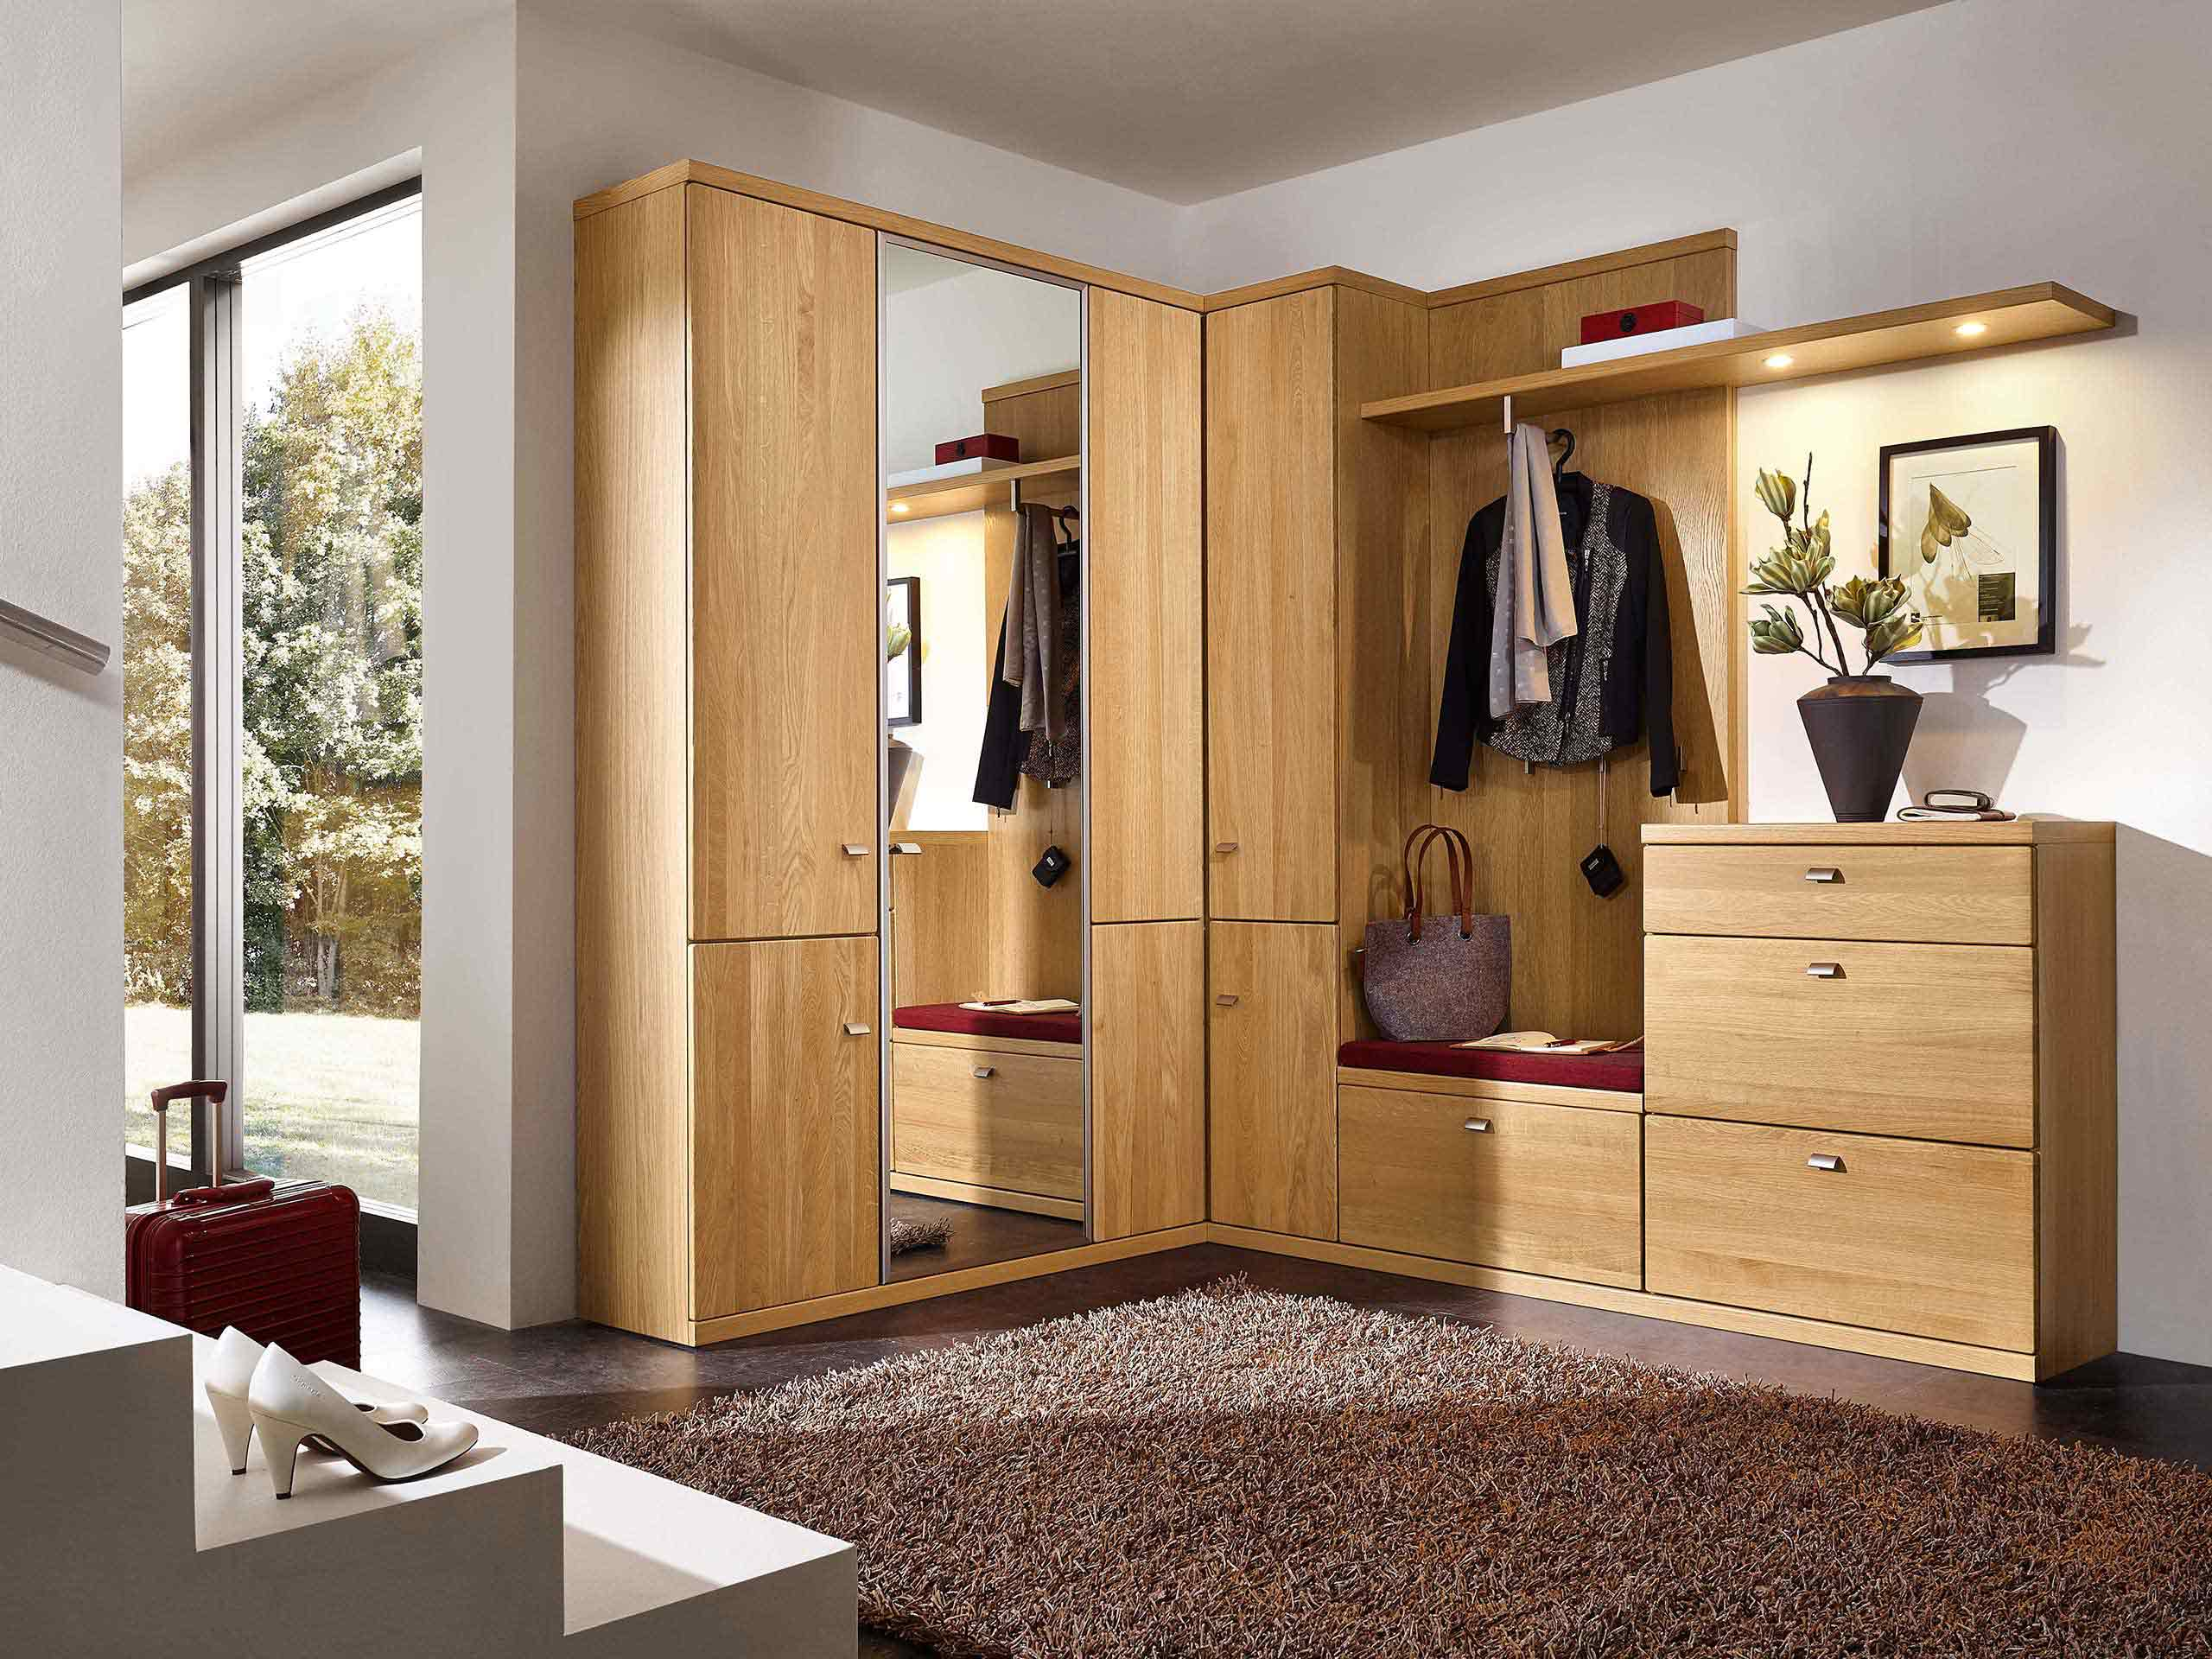 garderobe rmw wohnm. Black Bedroom Furniture Sets. Home Design Ideas